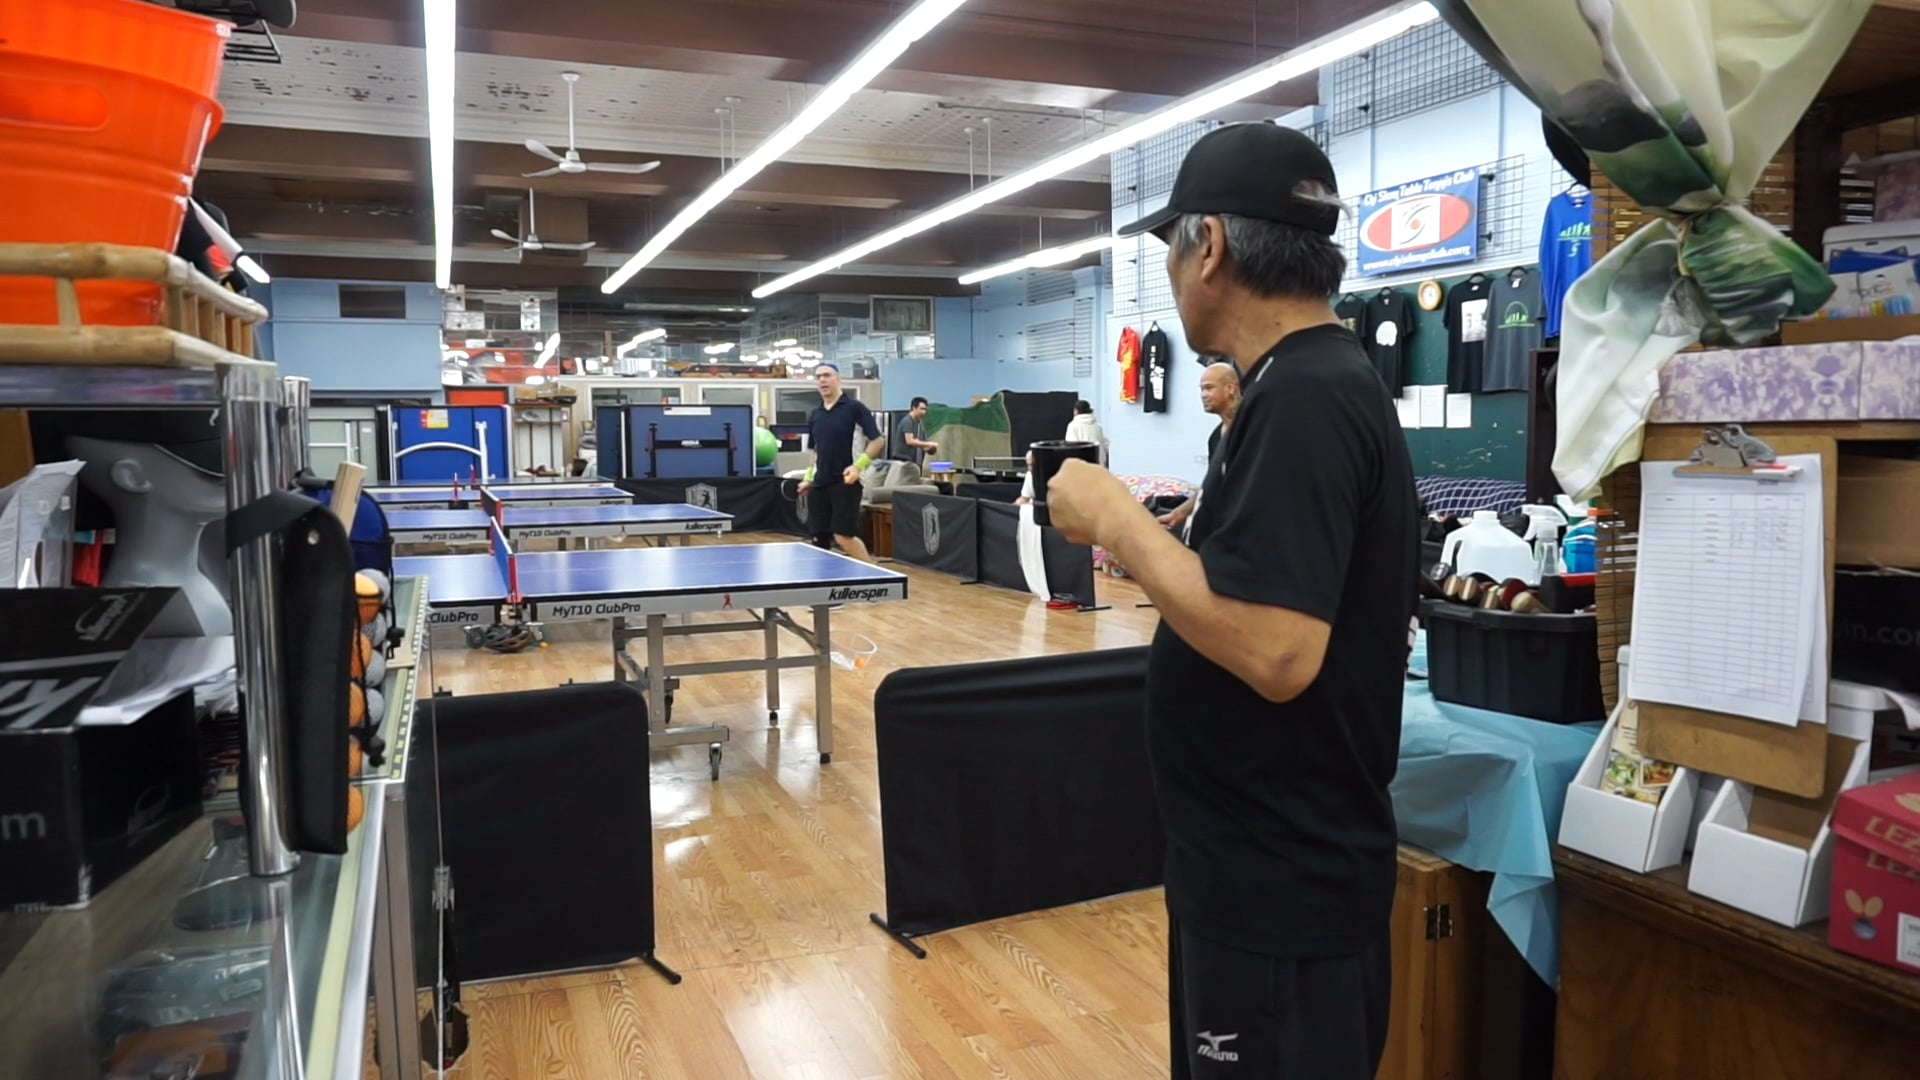 Ardy Taveerasert: Mr. Ping Pong